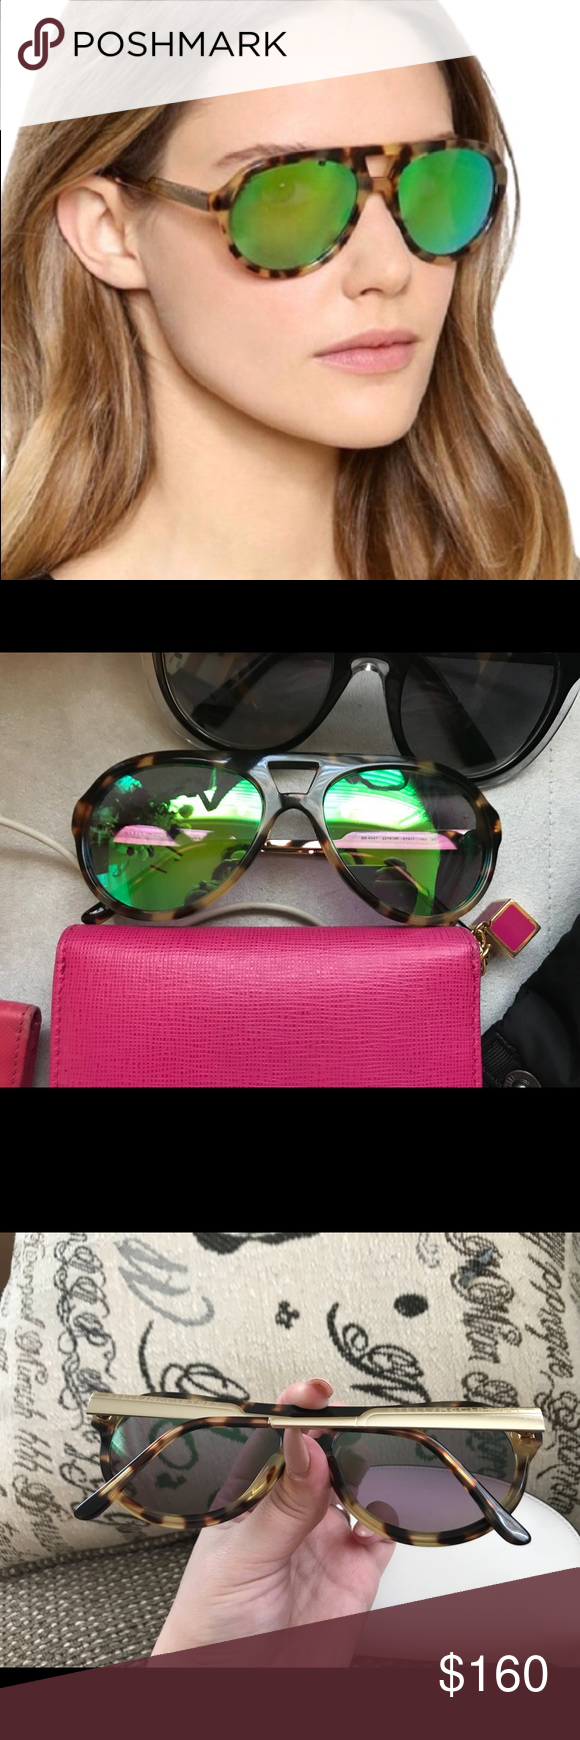 Authentic Stella McCartney Green Mirror Aviators Authentic Stella McCartney Blonde Tortoise Shell Green Mirrored Aviators. Absolutely love these! Blonde Tortoise Shell printed exterior, with silver hardware lined arms and green mirrored lenses. Thick aviator shaped. These have been fitted to my face but can be fitted to your face for free at any designer sunglasses store. Very little wear, no significant scratches, in excellent condition. No accessories included unless previously arranged prior